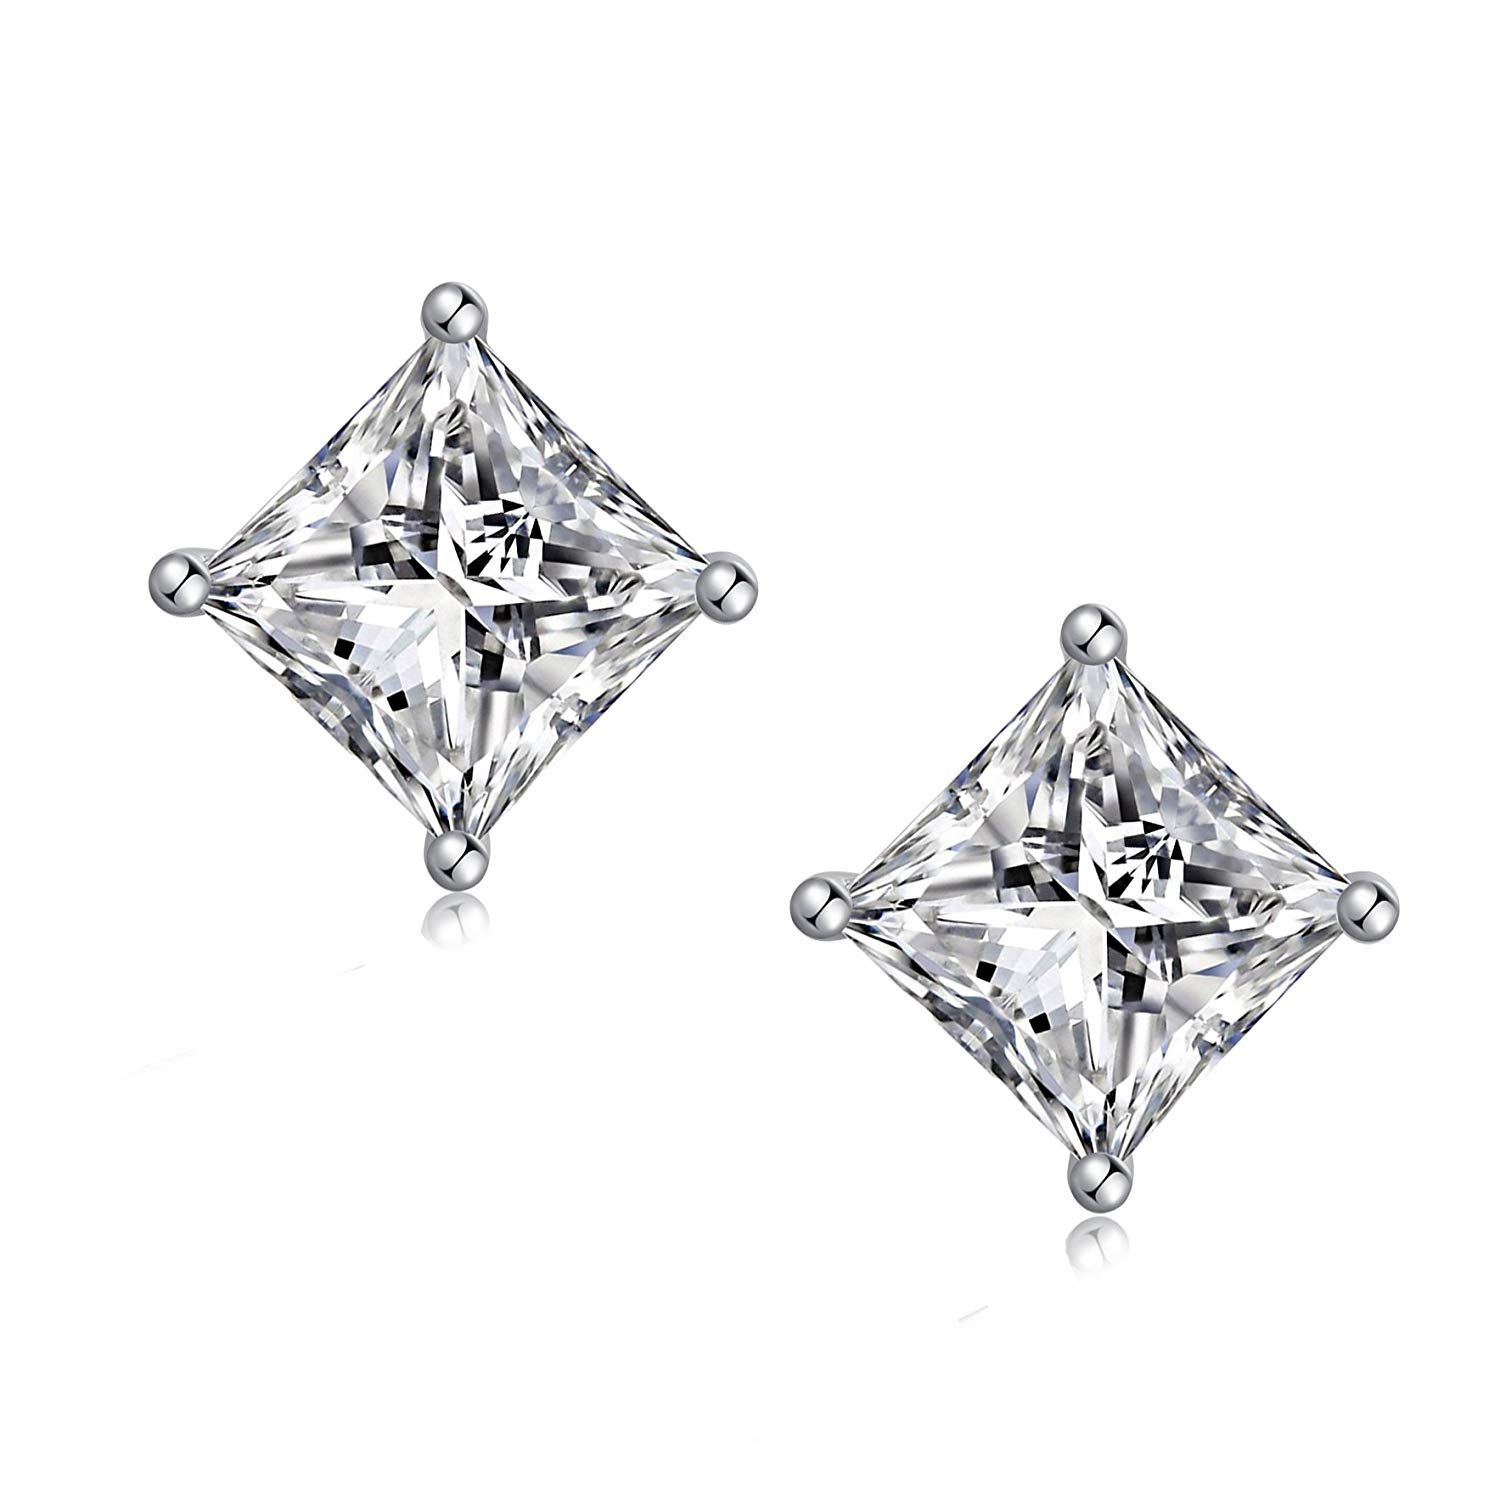 925 Sterling Silver Square Cubic Zirconia Stud Earrings Hypoallergenic Clear Princess Cut Aaa Fake Diamond For Men And Women 4 8mm